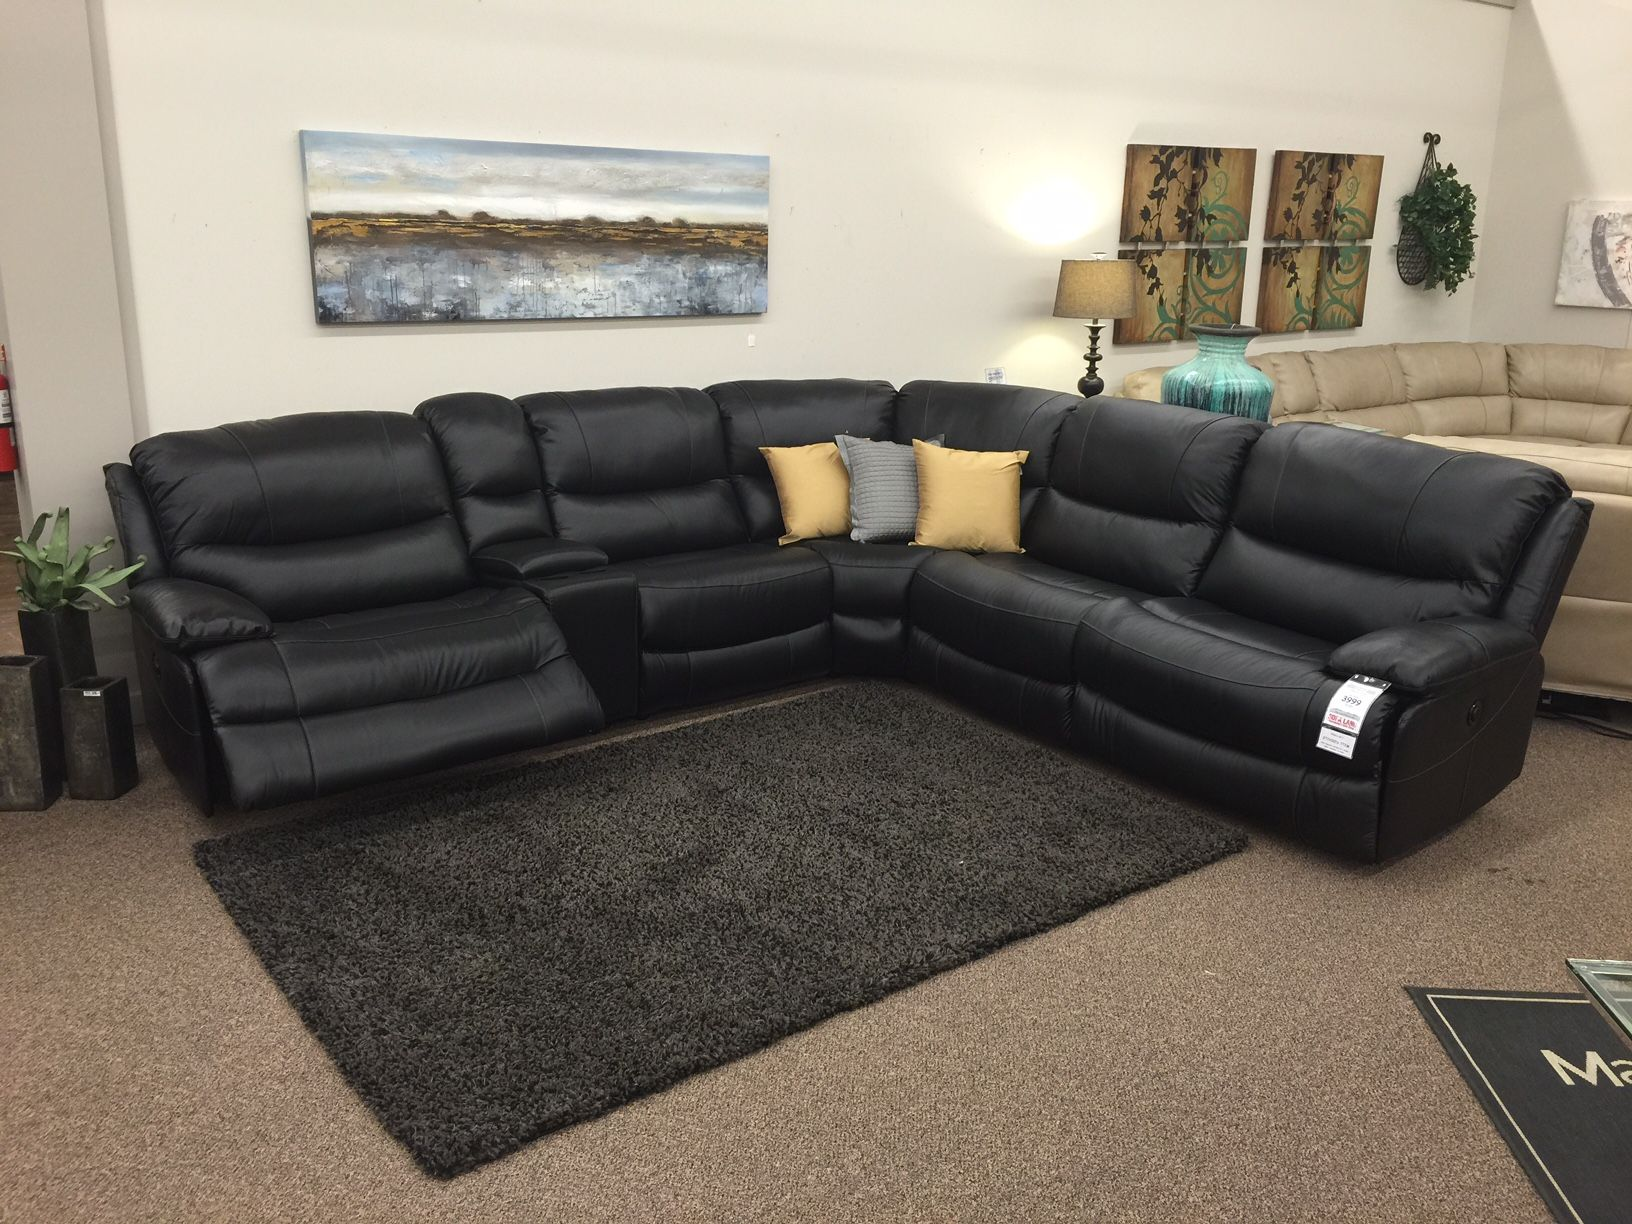 The Chaz just arrived as a Power Reclining Sectional & a Power